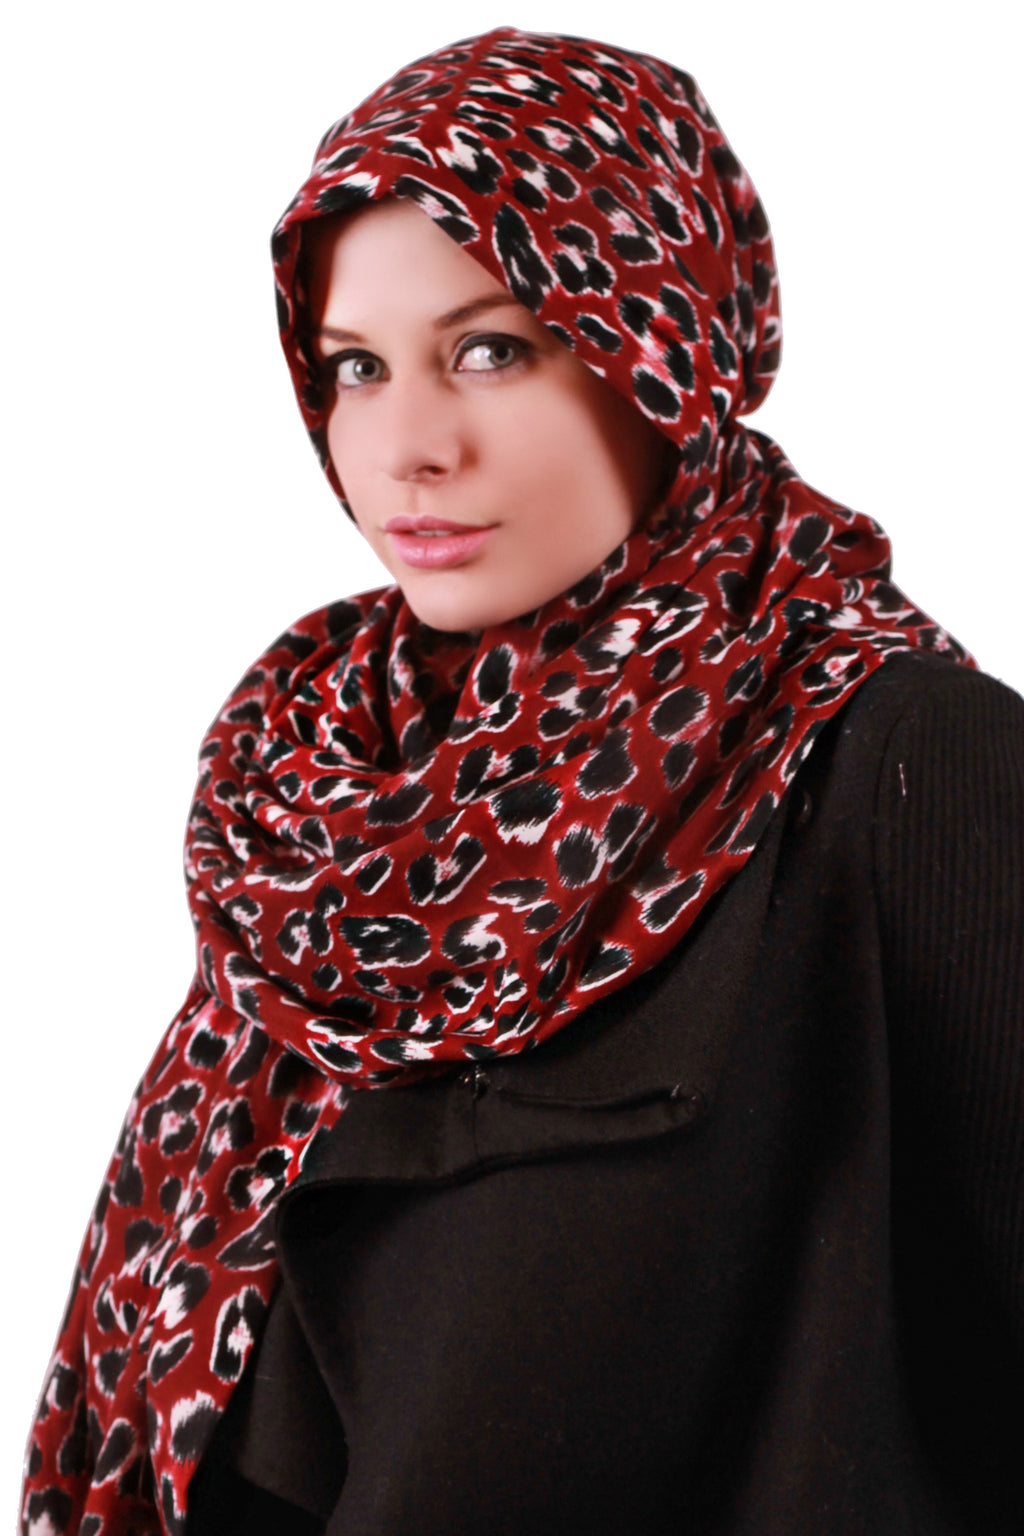 Hooded Headscarf - Burgundy/ Black Animal Print